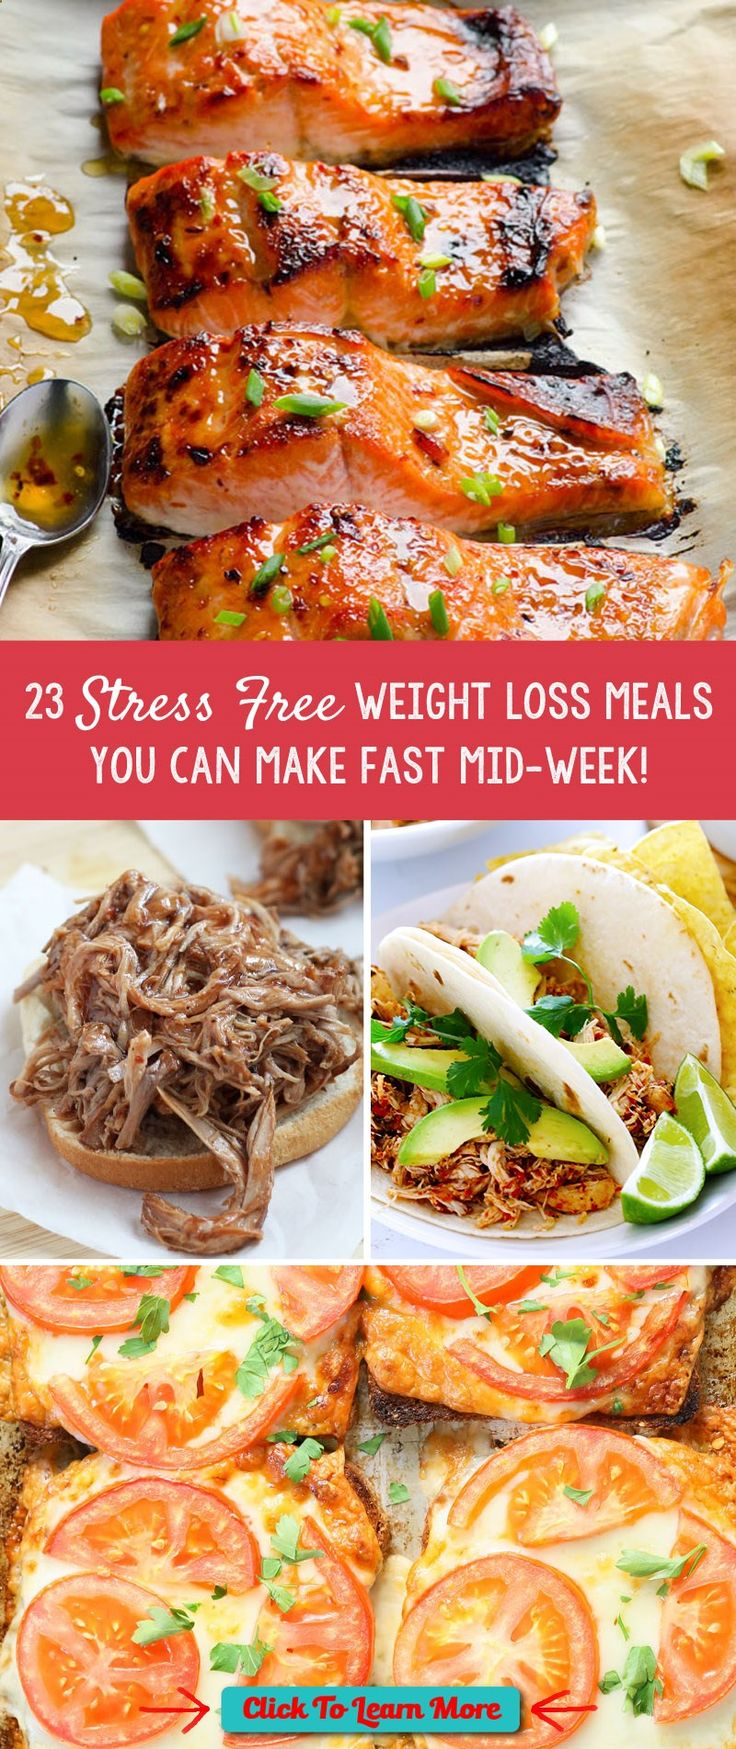 #FastestWayToLoseWeight by EATING, Click to learn more, 23 Stress Free Weight Loss Meals You Can Make Fast Mid-Week! , #HealthyRecipes, #FitnessRecipes, #BurnFatRecipes, #WeightLossRecipes, #WeightLossDiets